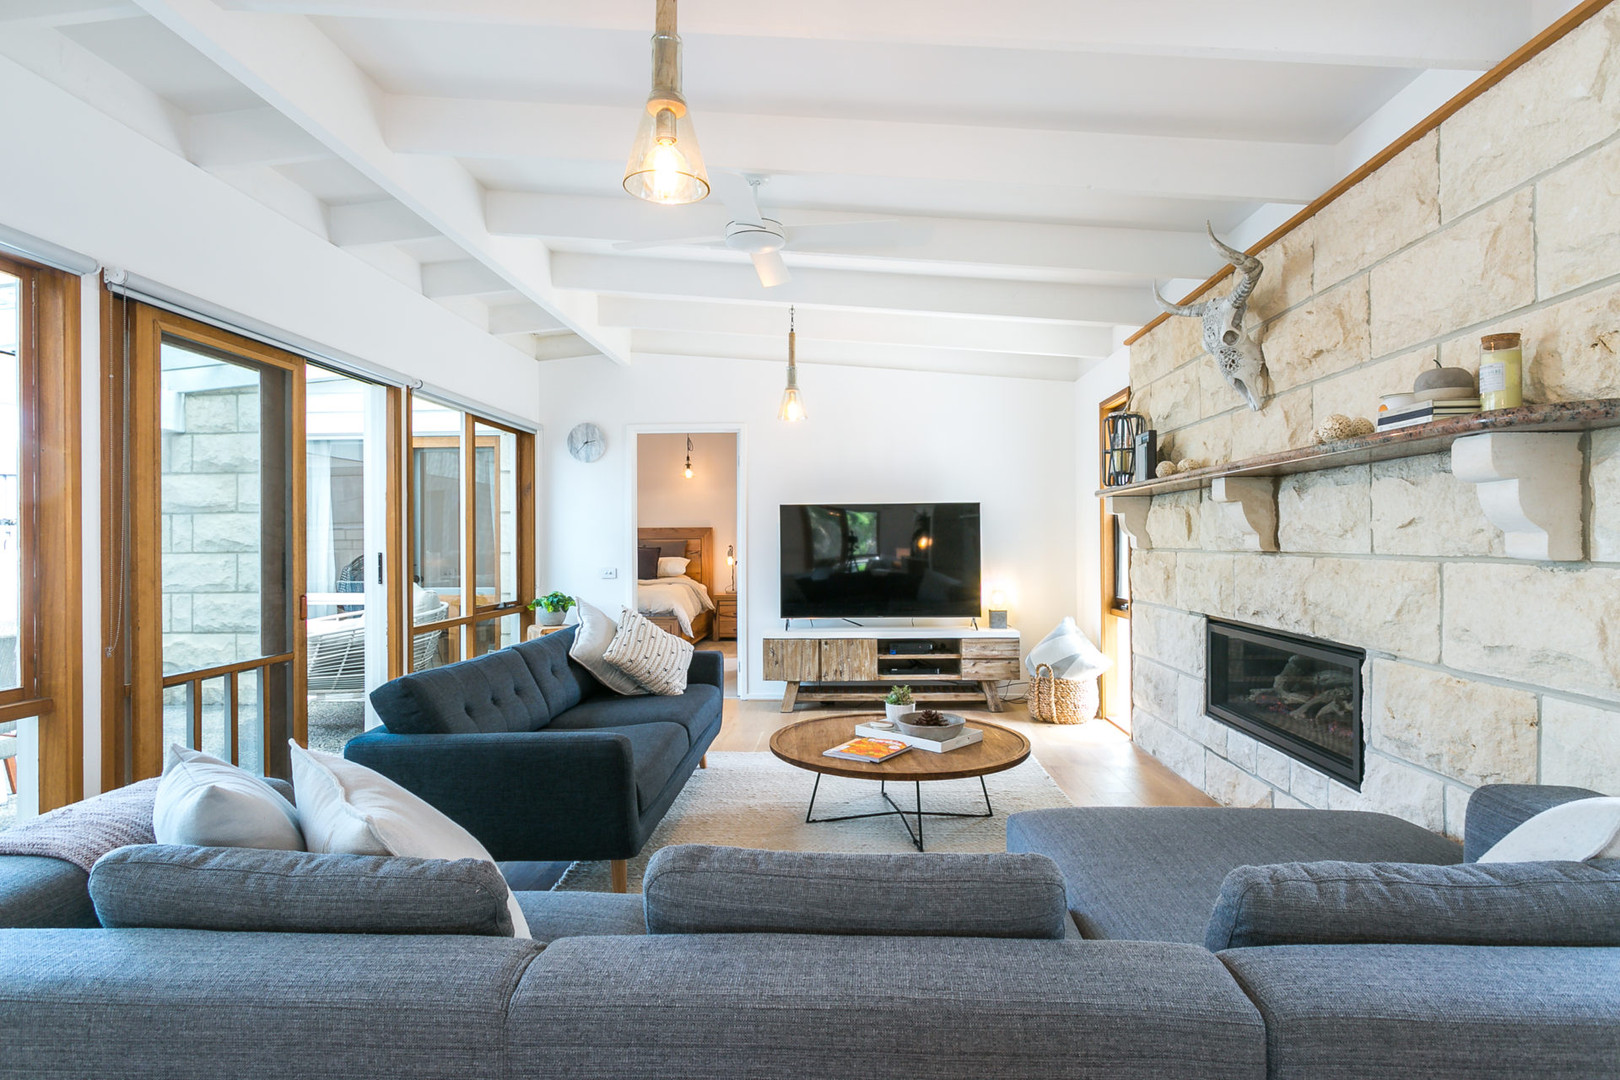 Living area with super comfy couches